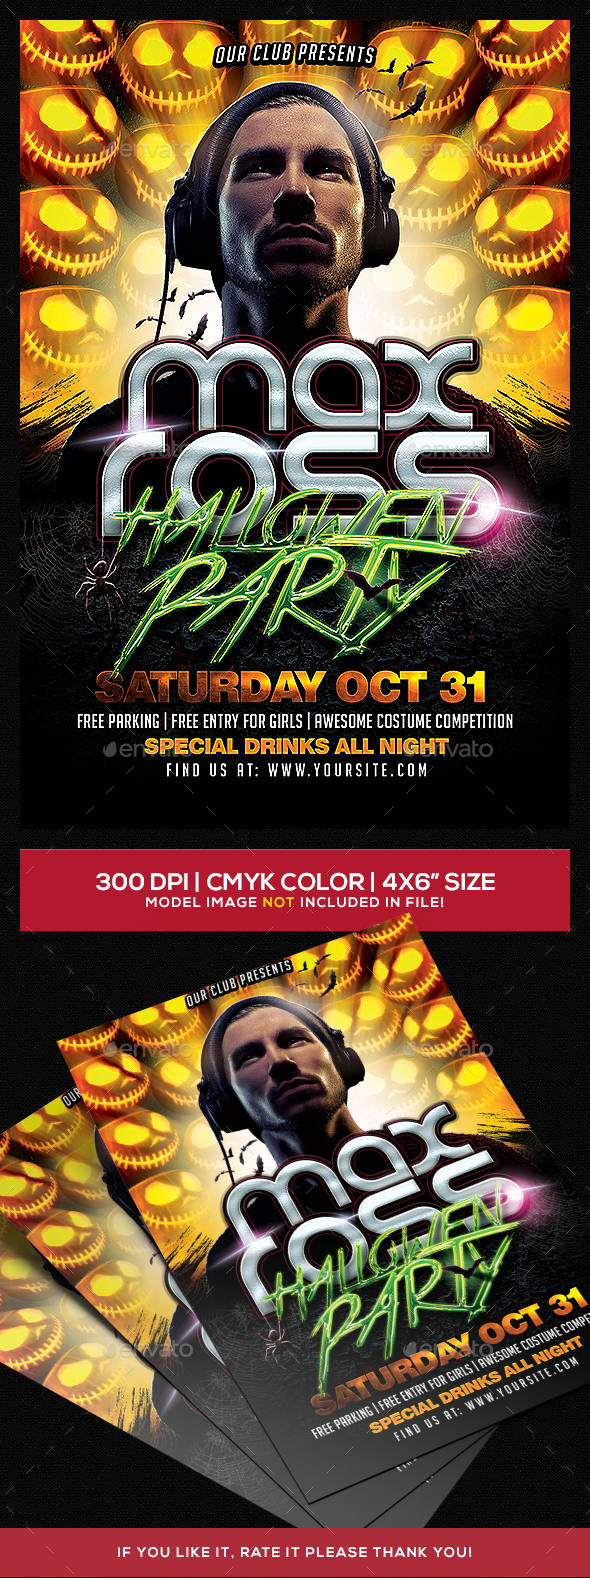 Halloween Party Dj Flyer Template